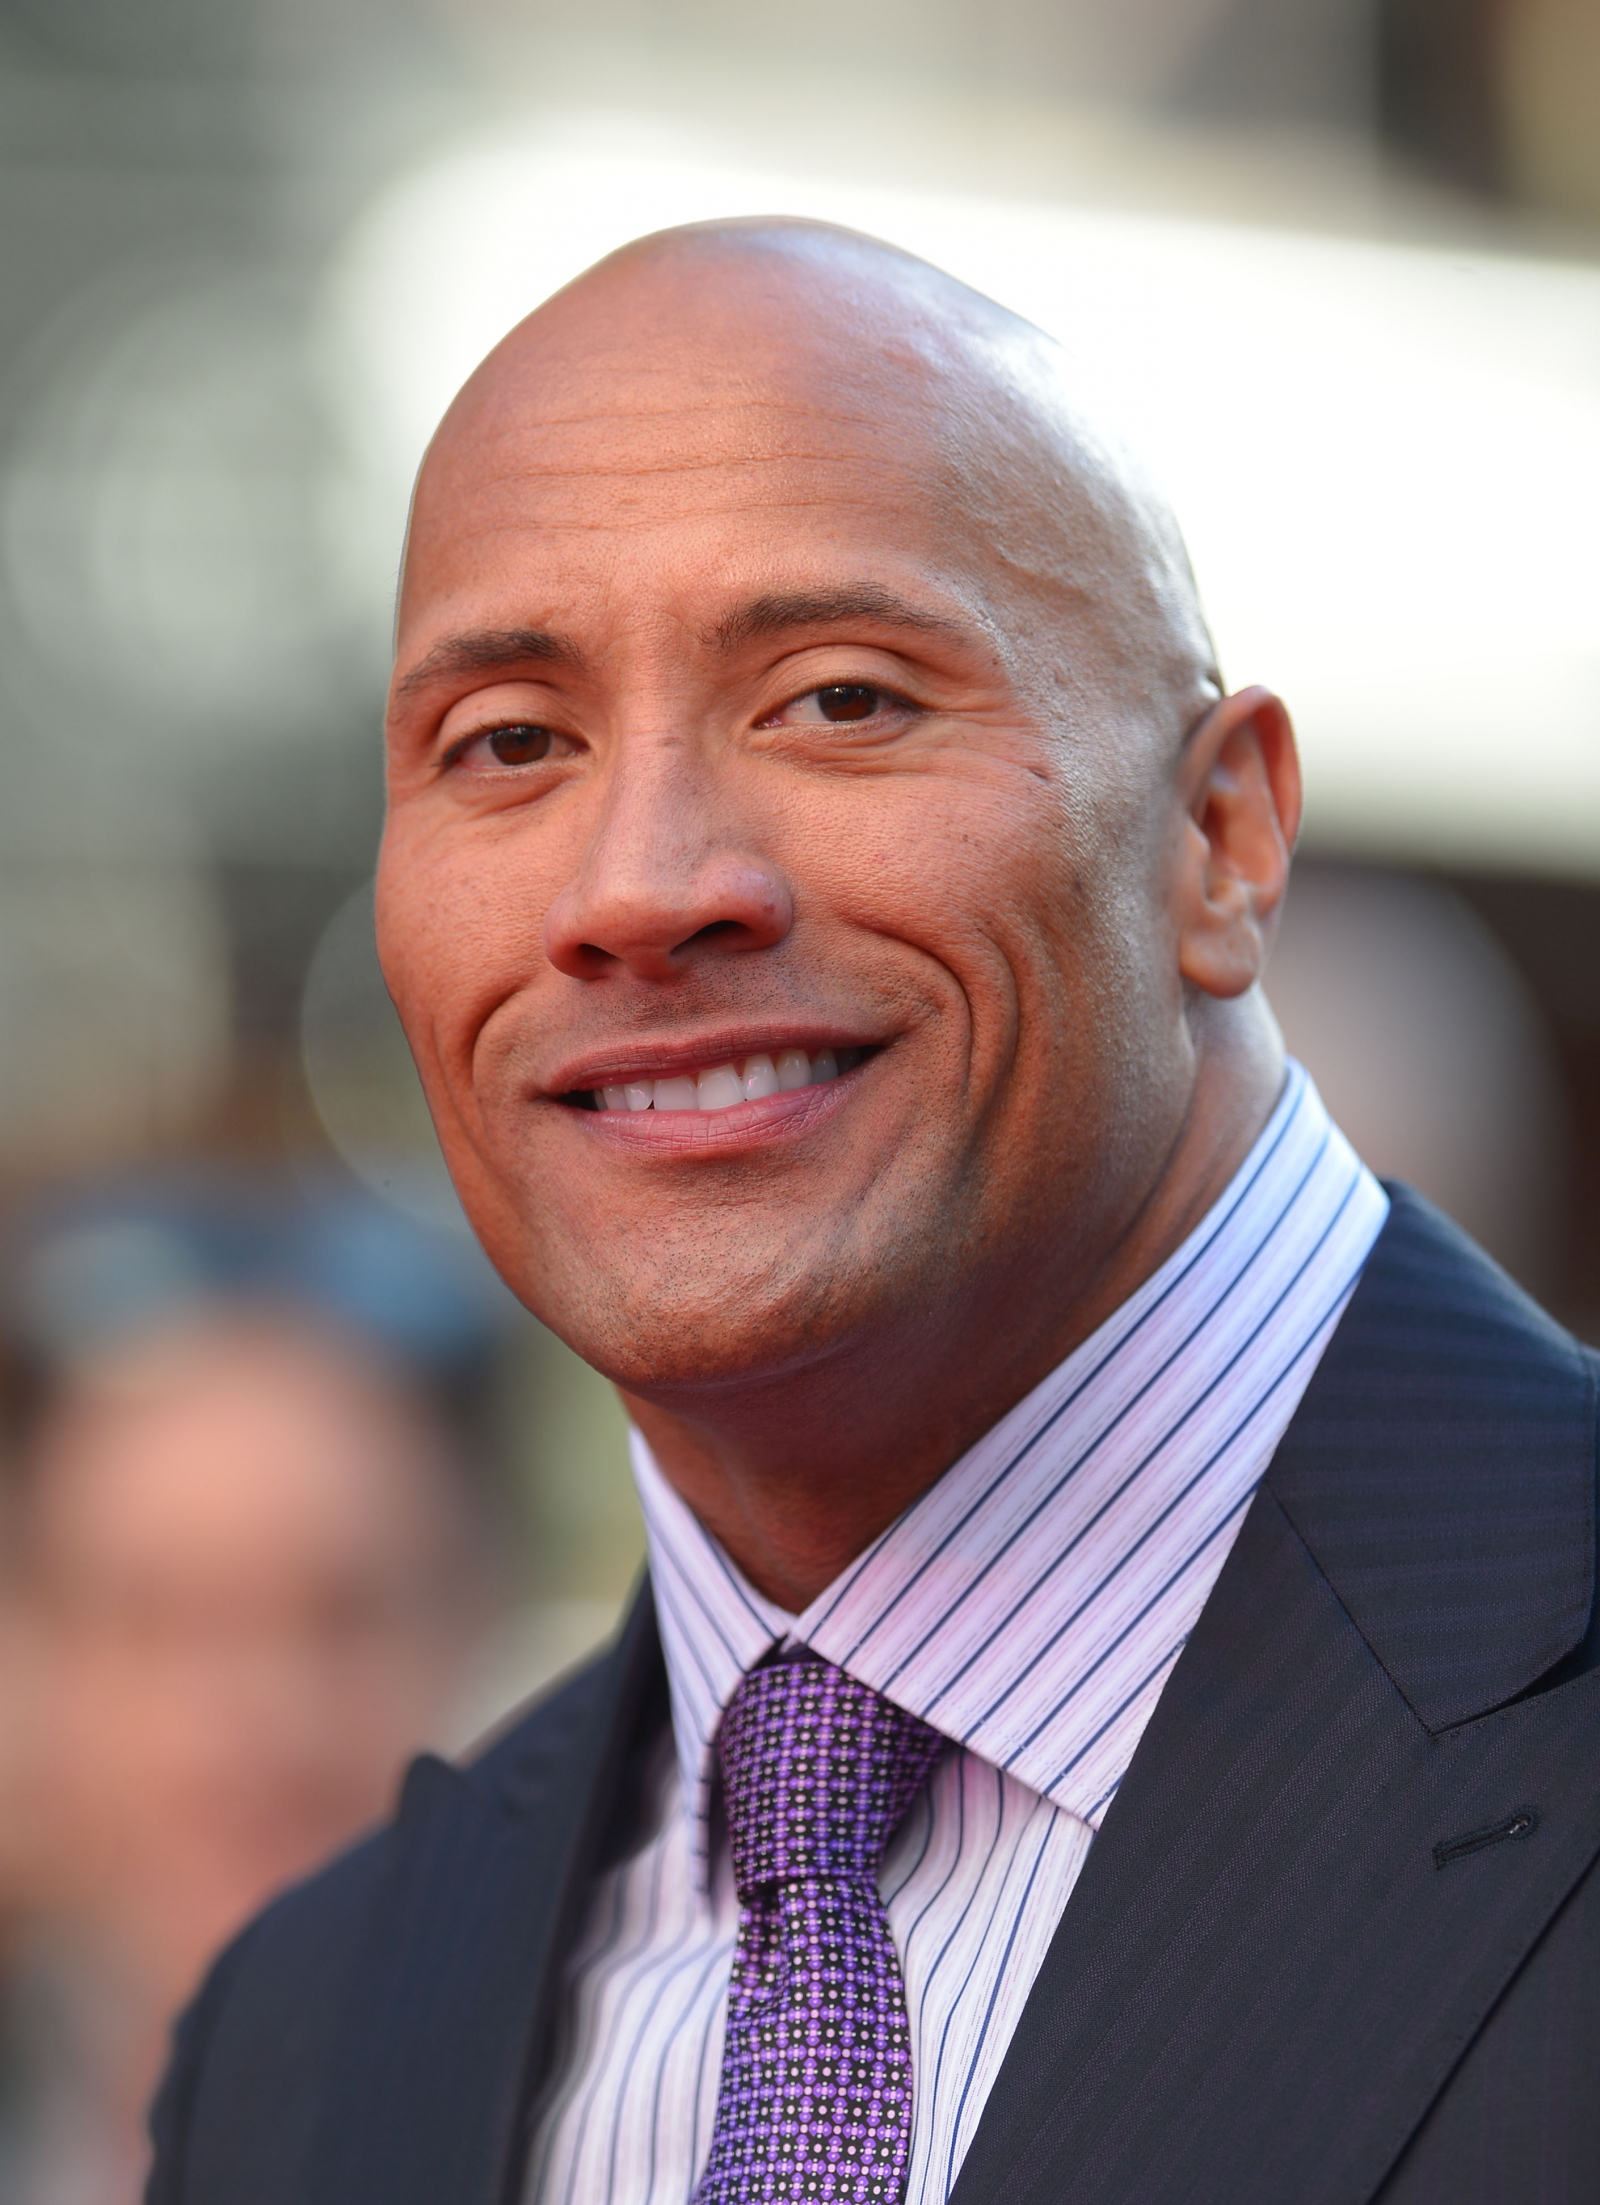 Dwayne Johnson starring DC supervillain Black Adam to headline solo superhero film